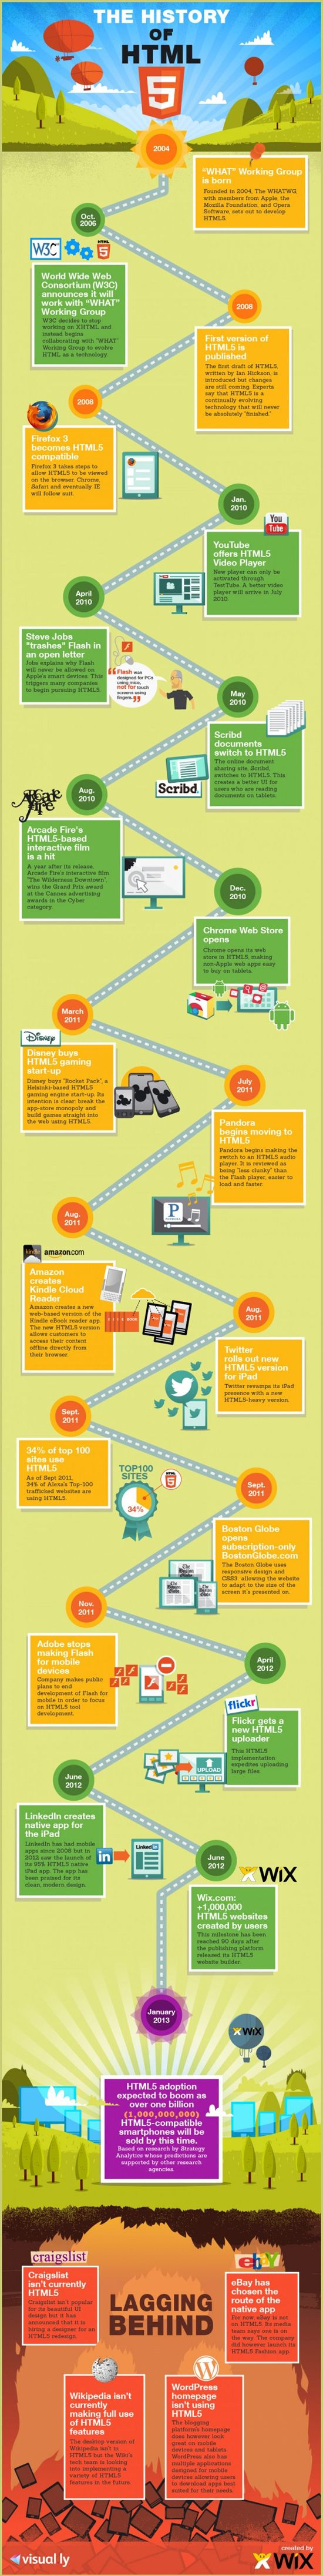 Infographic: History of HTML5